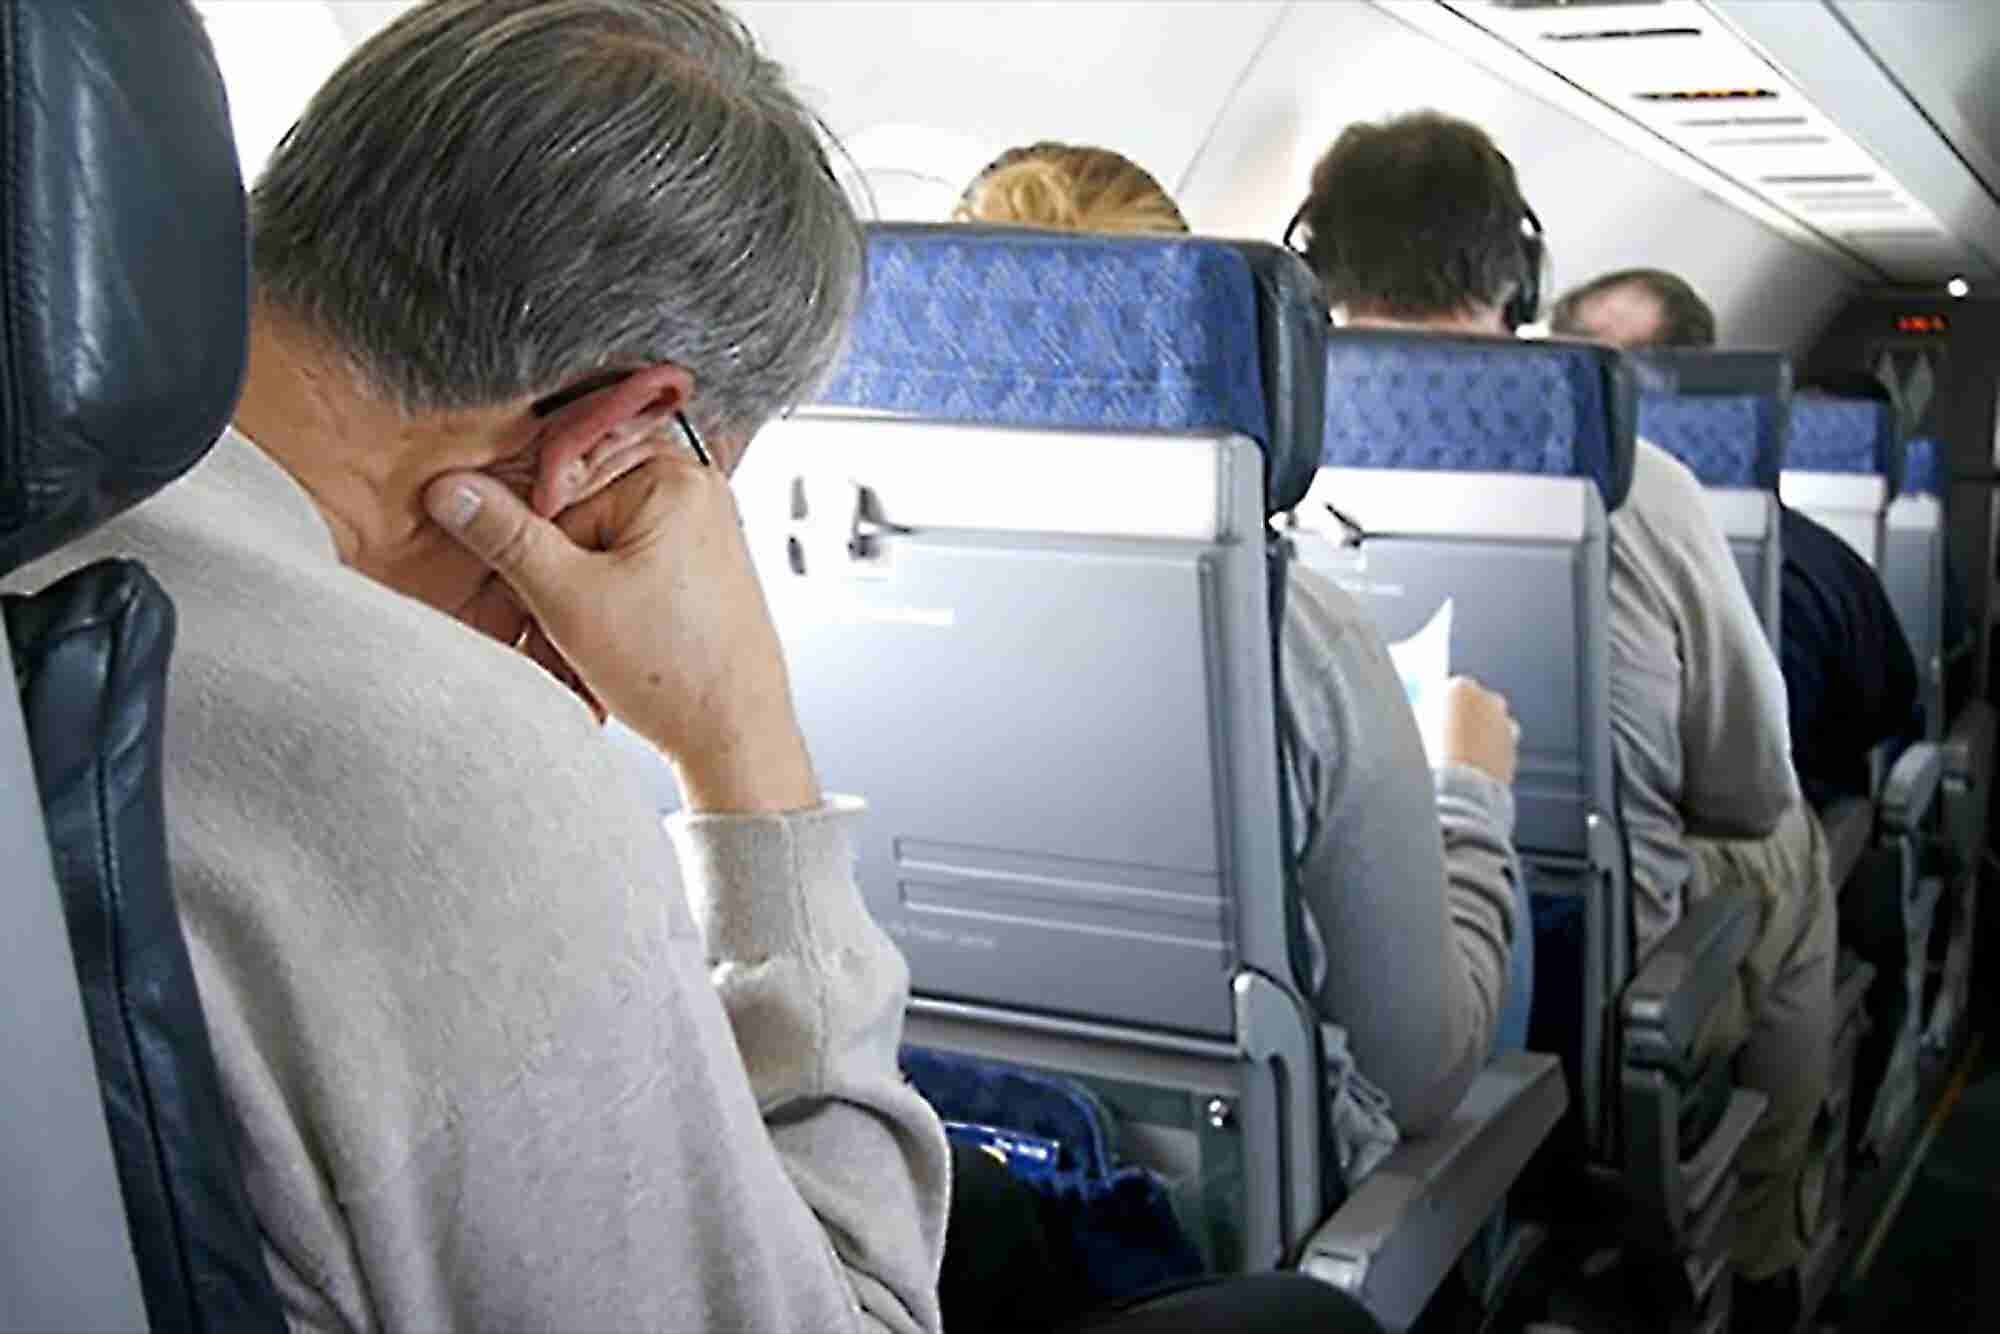 Surprising Tricks: How to Sleep on a Plane